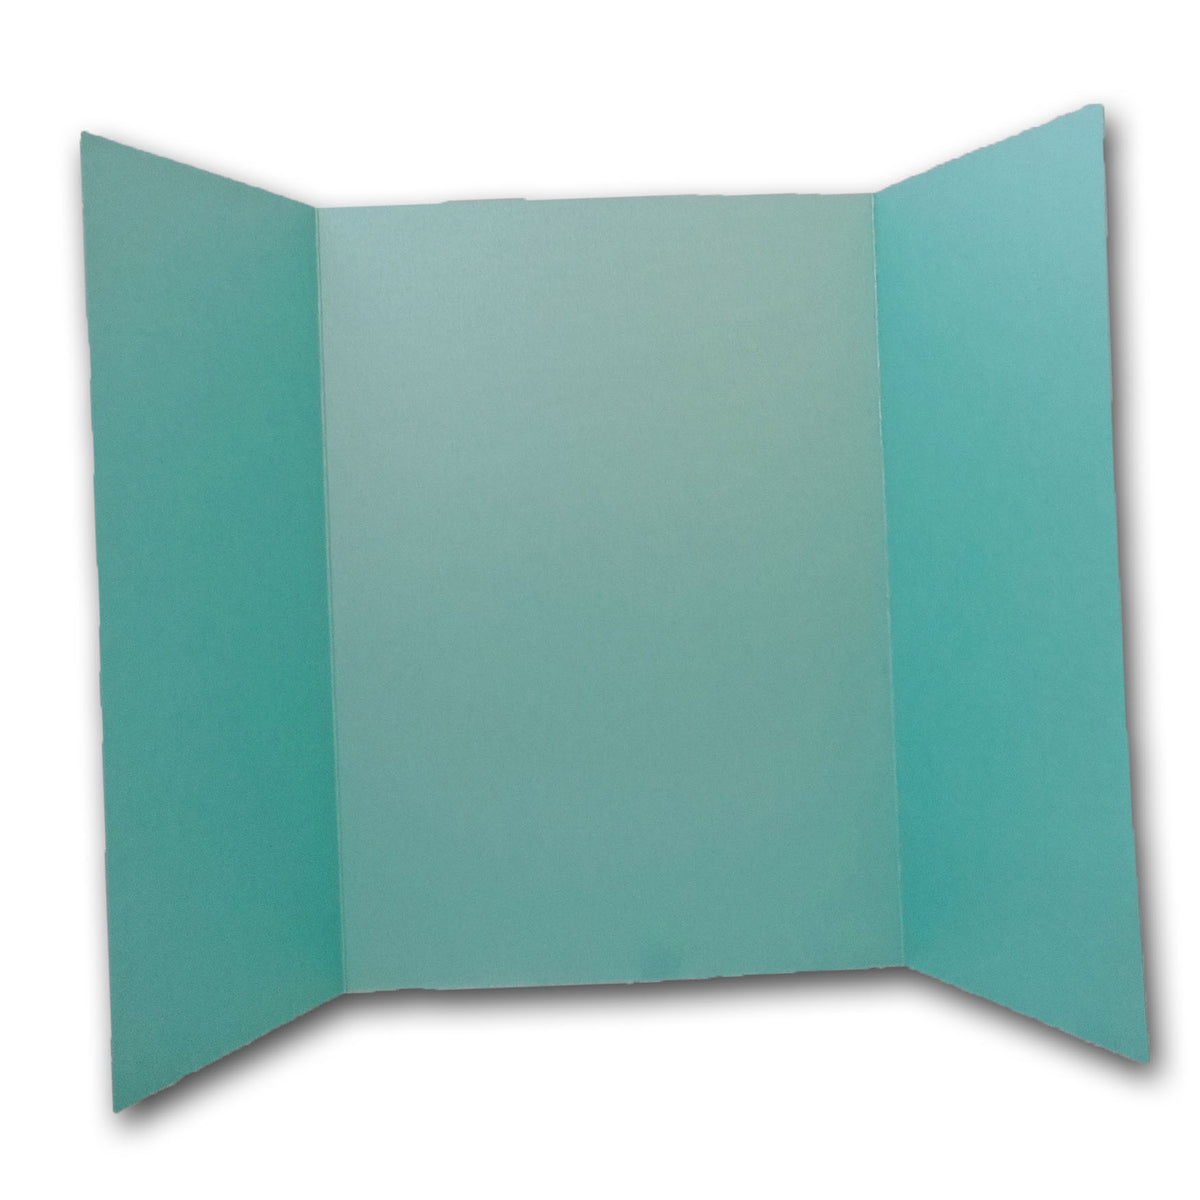 Shimmery Blue Green Aqua 5x7 Gatefold Discount Card Stock DIY Invitations